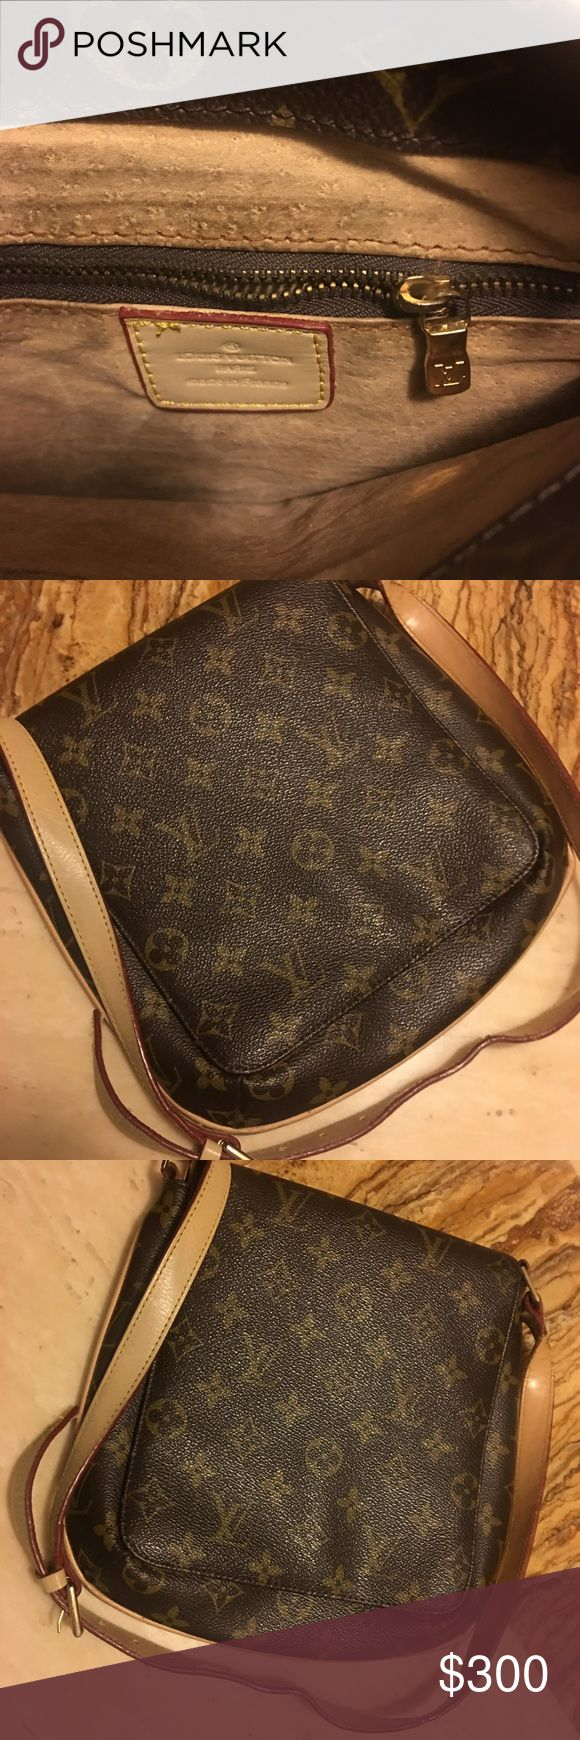 Louis Vuitton cross body bag Unisex. Used, authentic, genuine leather Louis Vuitton cross body bag. Little to no sign of usage, only marks are not visible n are located inside the bag as well as usage of strap. Louis Vuitton Bags Crossbody Bags